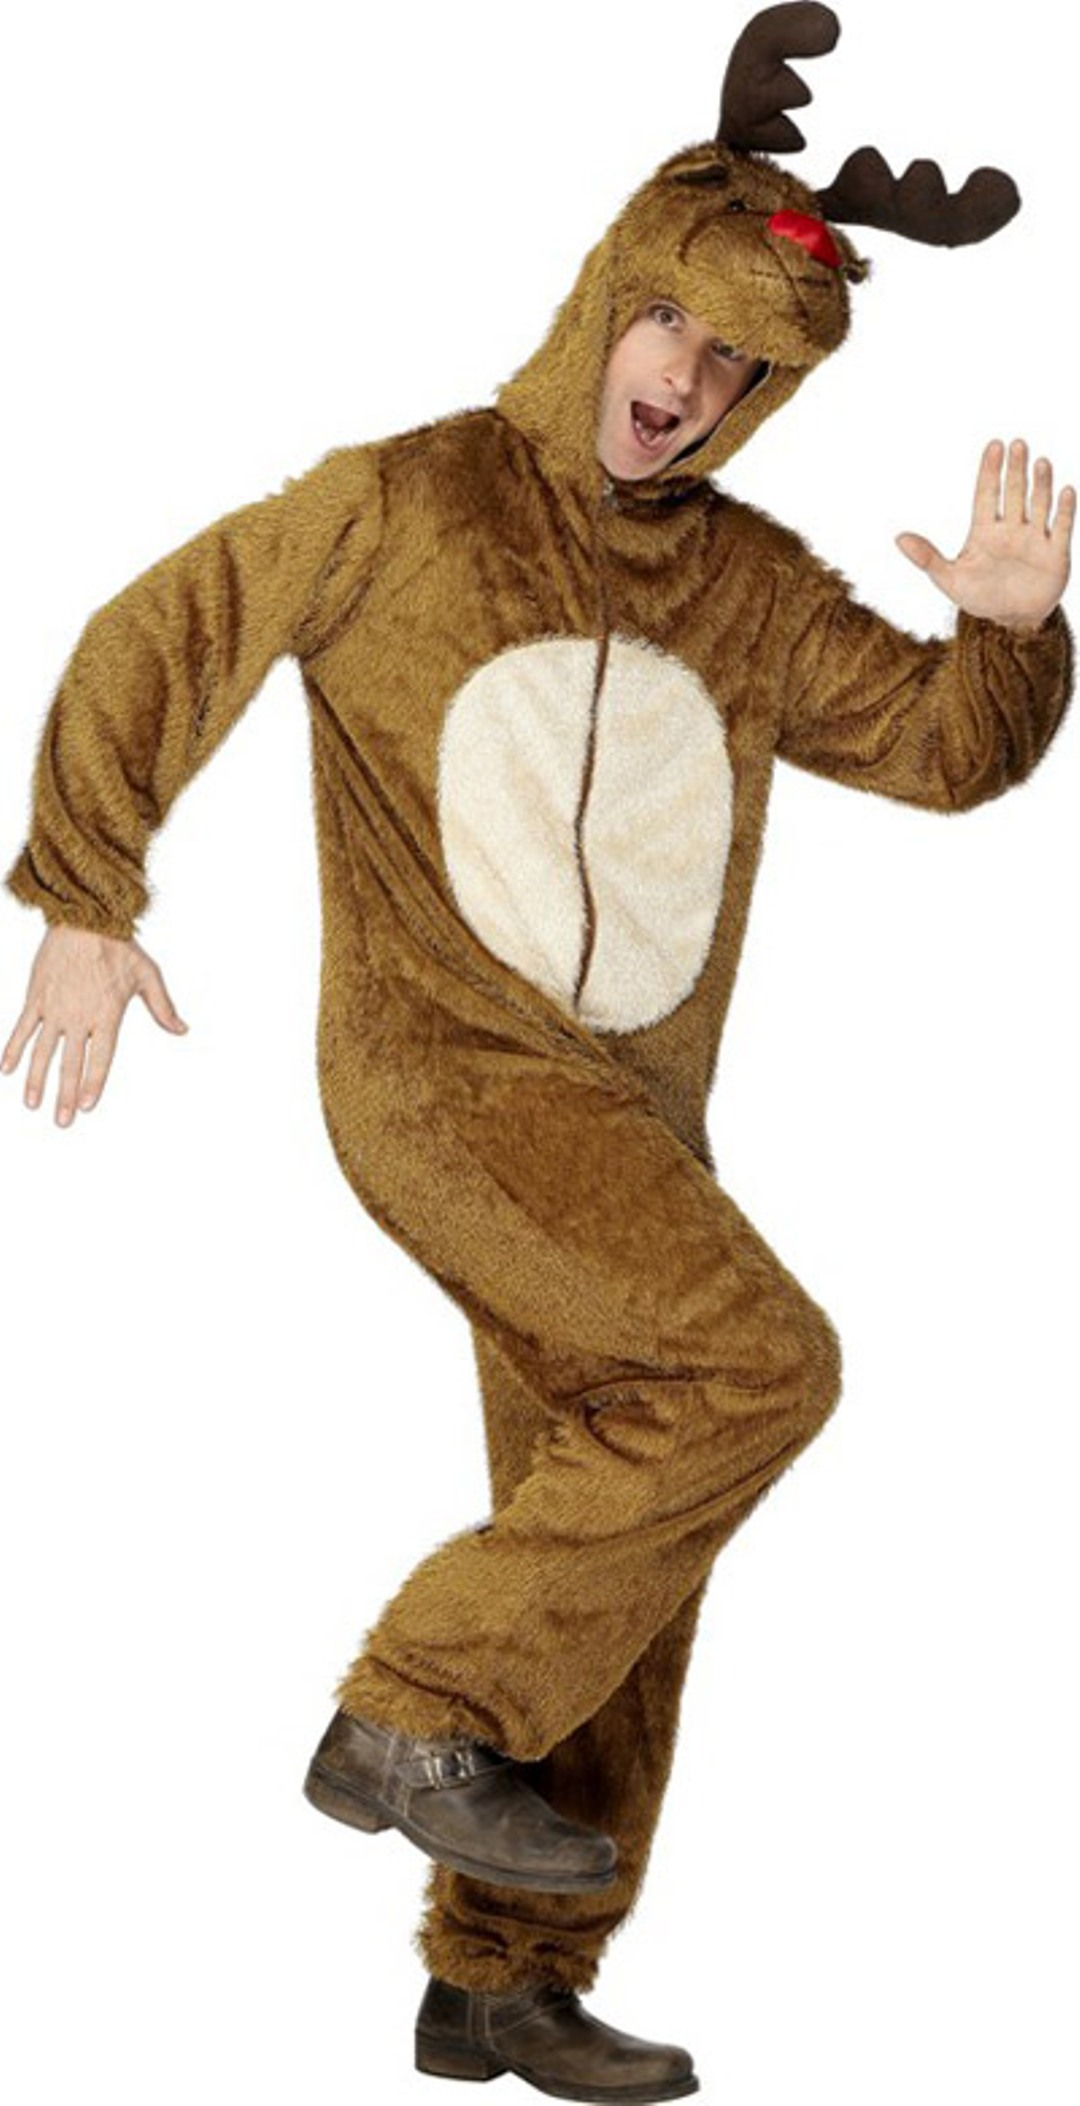 Reindeer outfit fancy dress party costume christmas outfit rudolf look